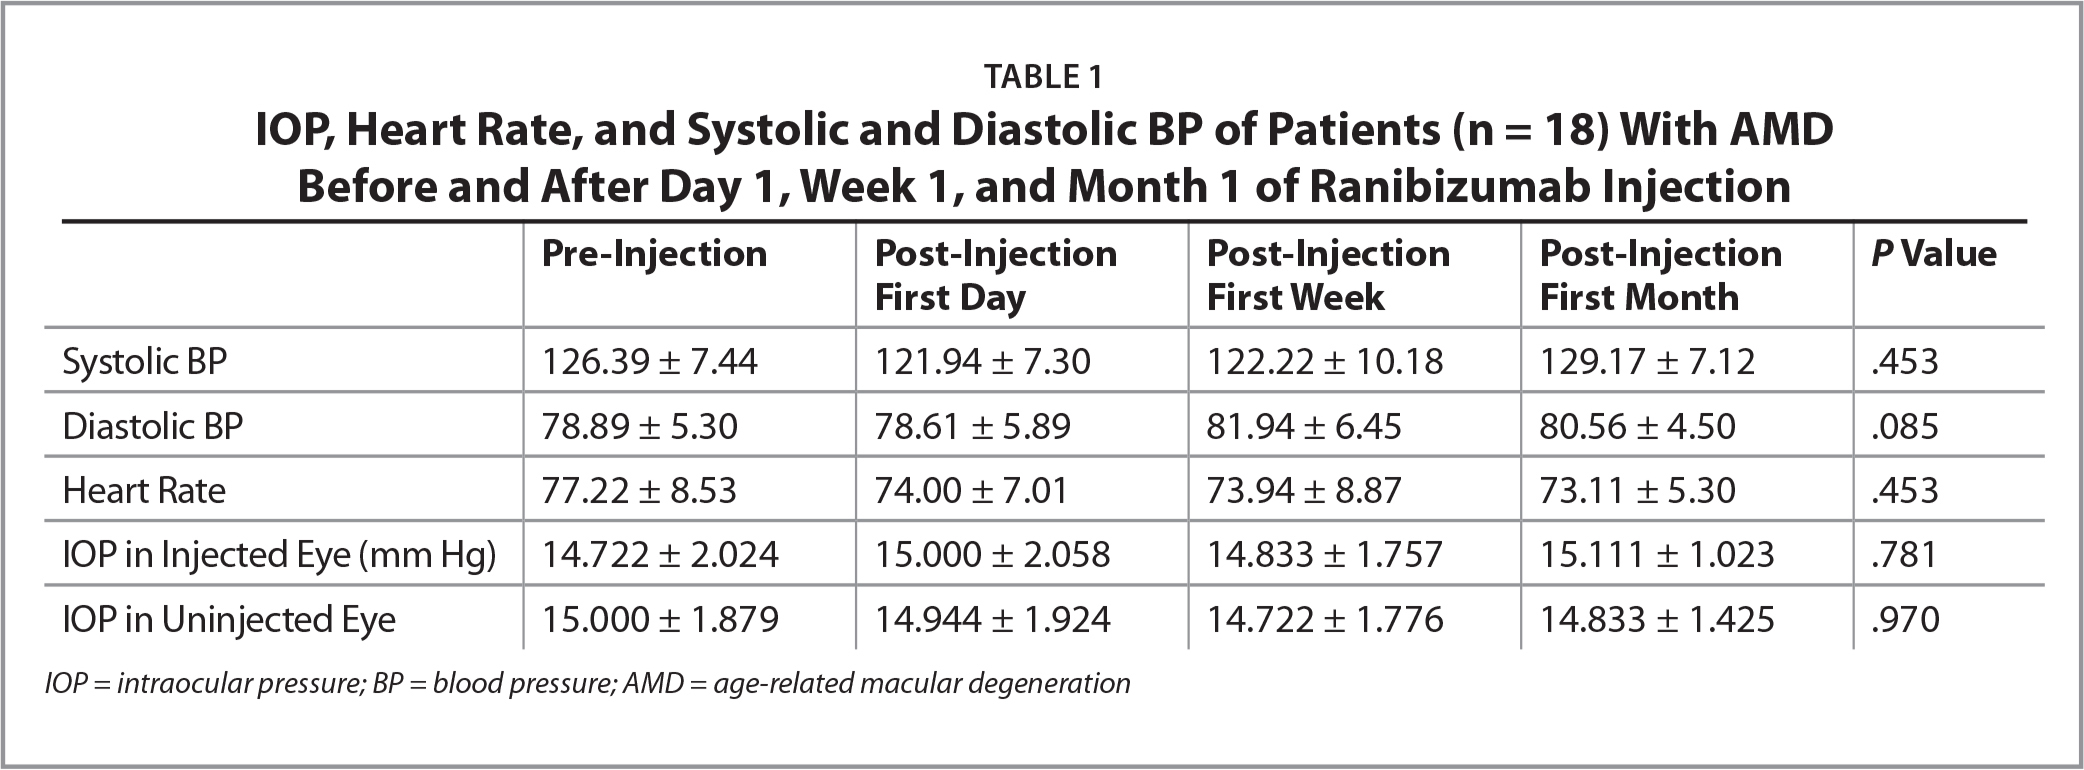 IOP, Heart Rate, and Systolic and Diastolic BP of Patients (n = 18) With AMD Before and After Day 1, Week 1, and Month 1 of Ranibizumab Injection